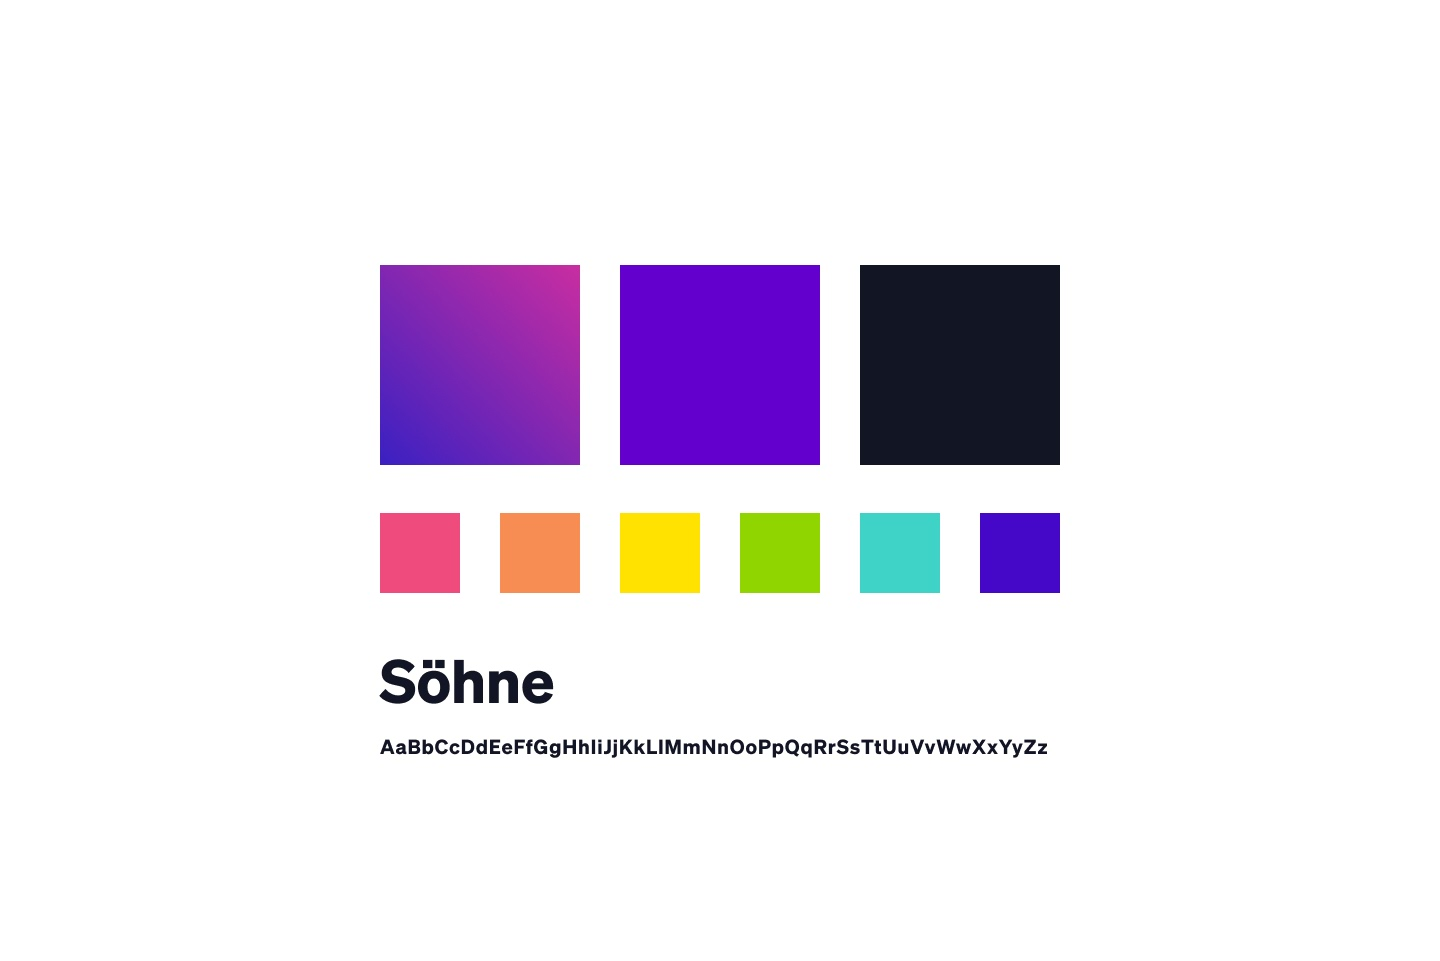 An image of a color palette and font that are examples of components of a brand style guide.